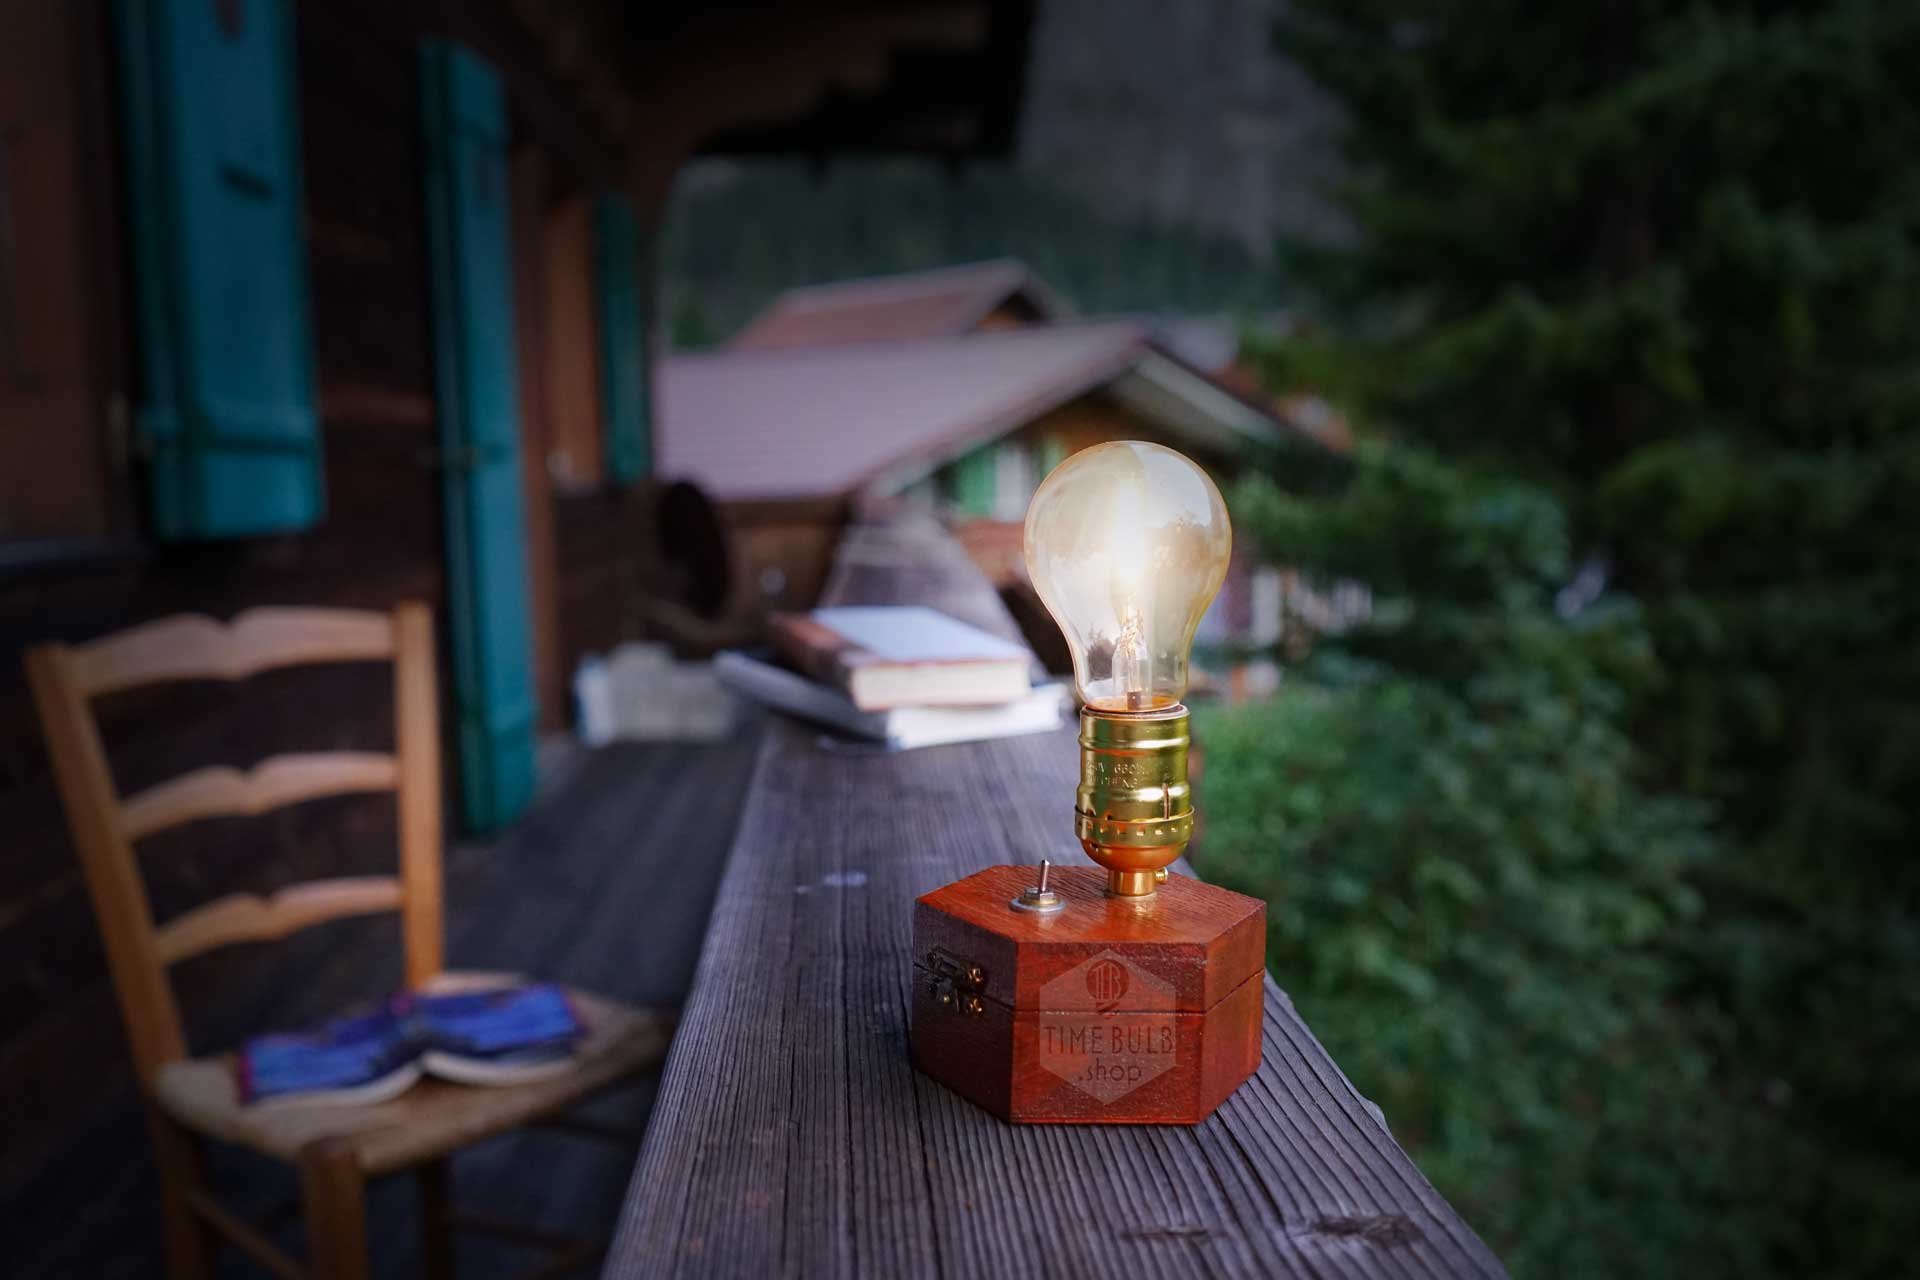 Timebulb Wireless Table Lamp - Woonkamer Lamp Vintage